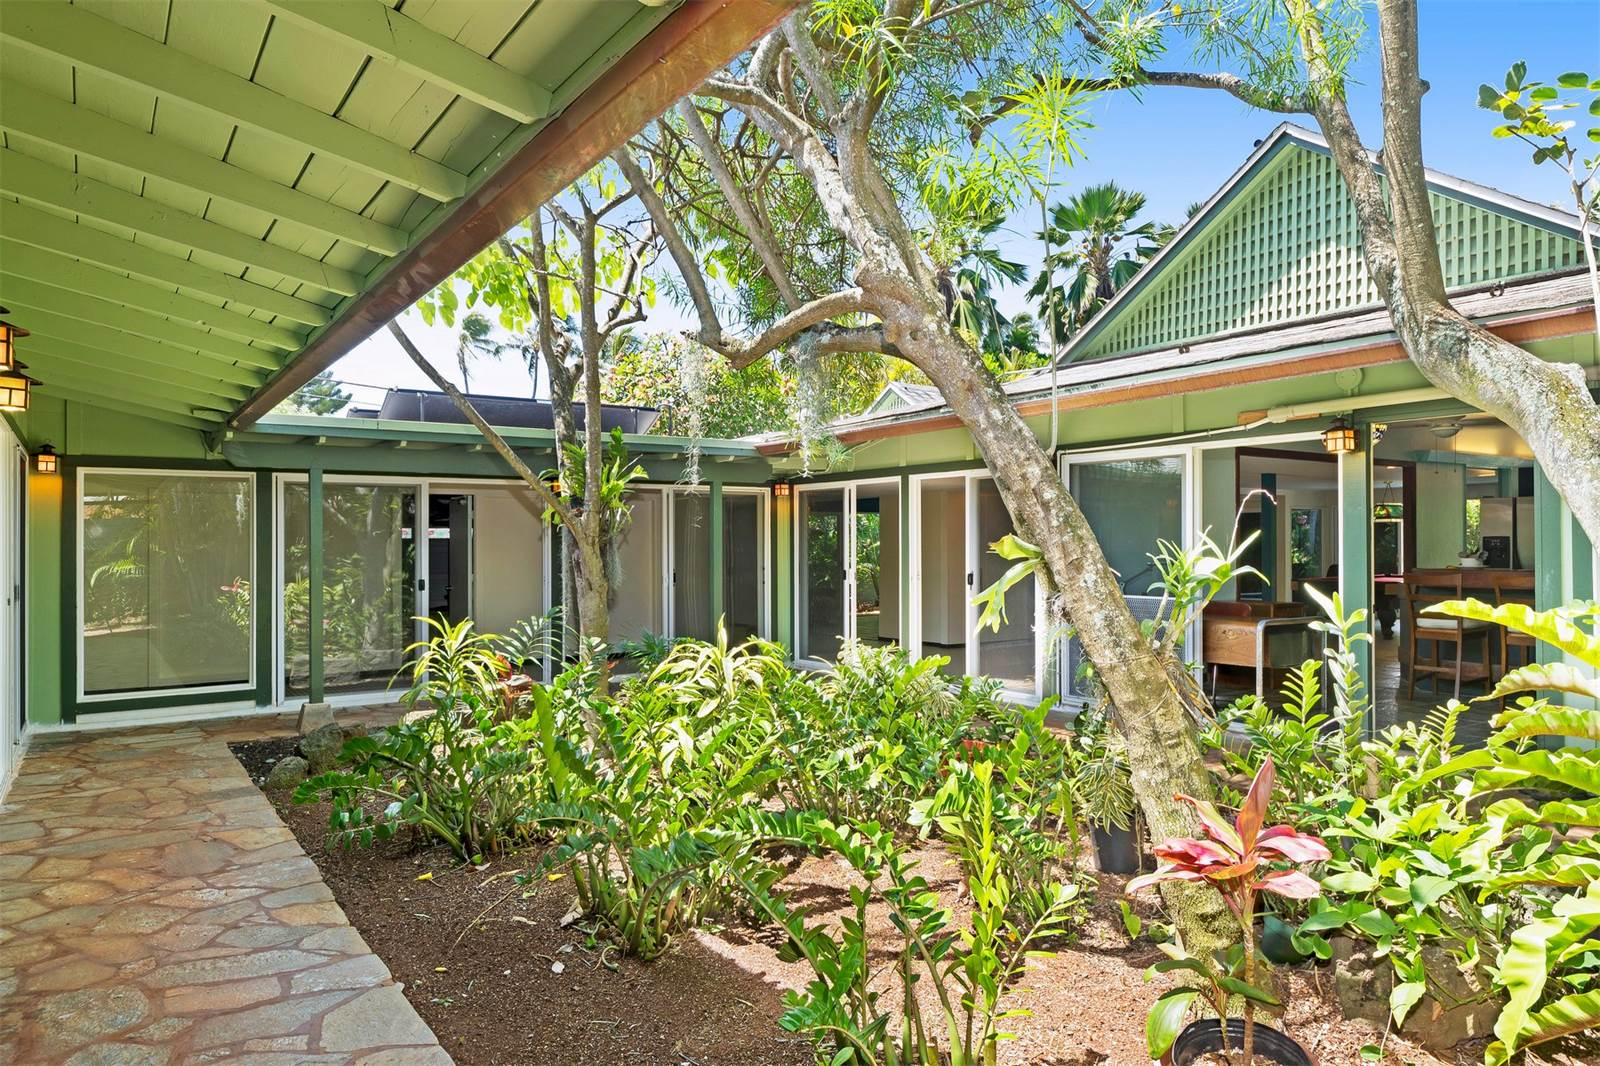 Hawaiian bungalow near the beach could be yours for under